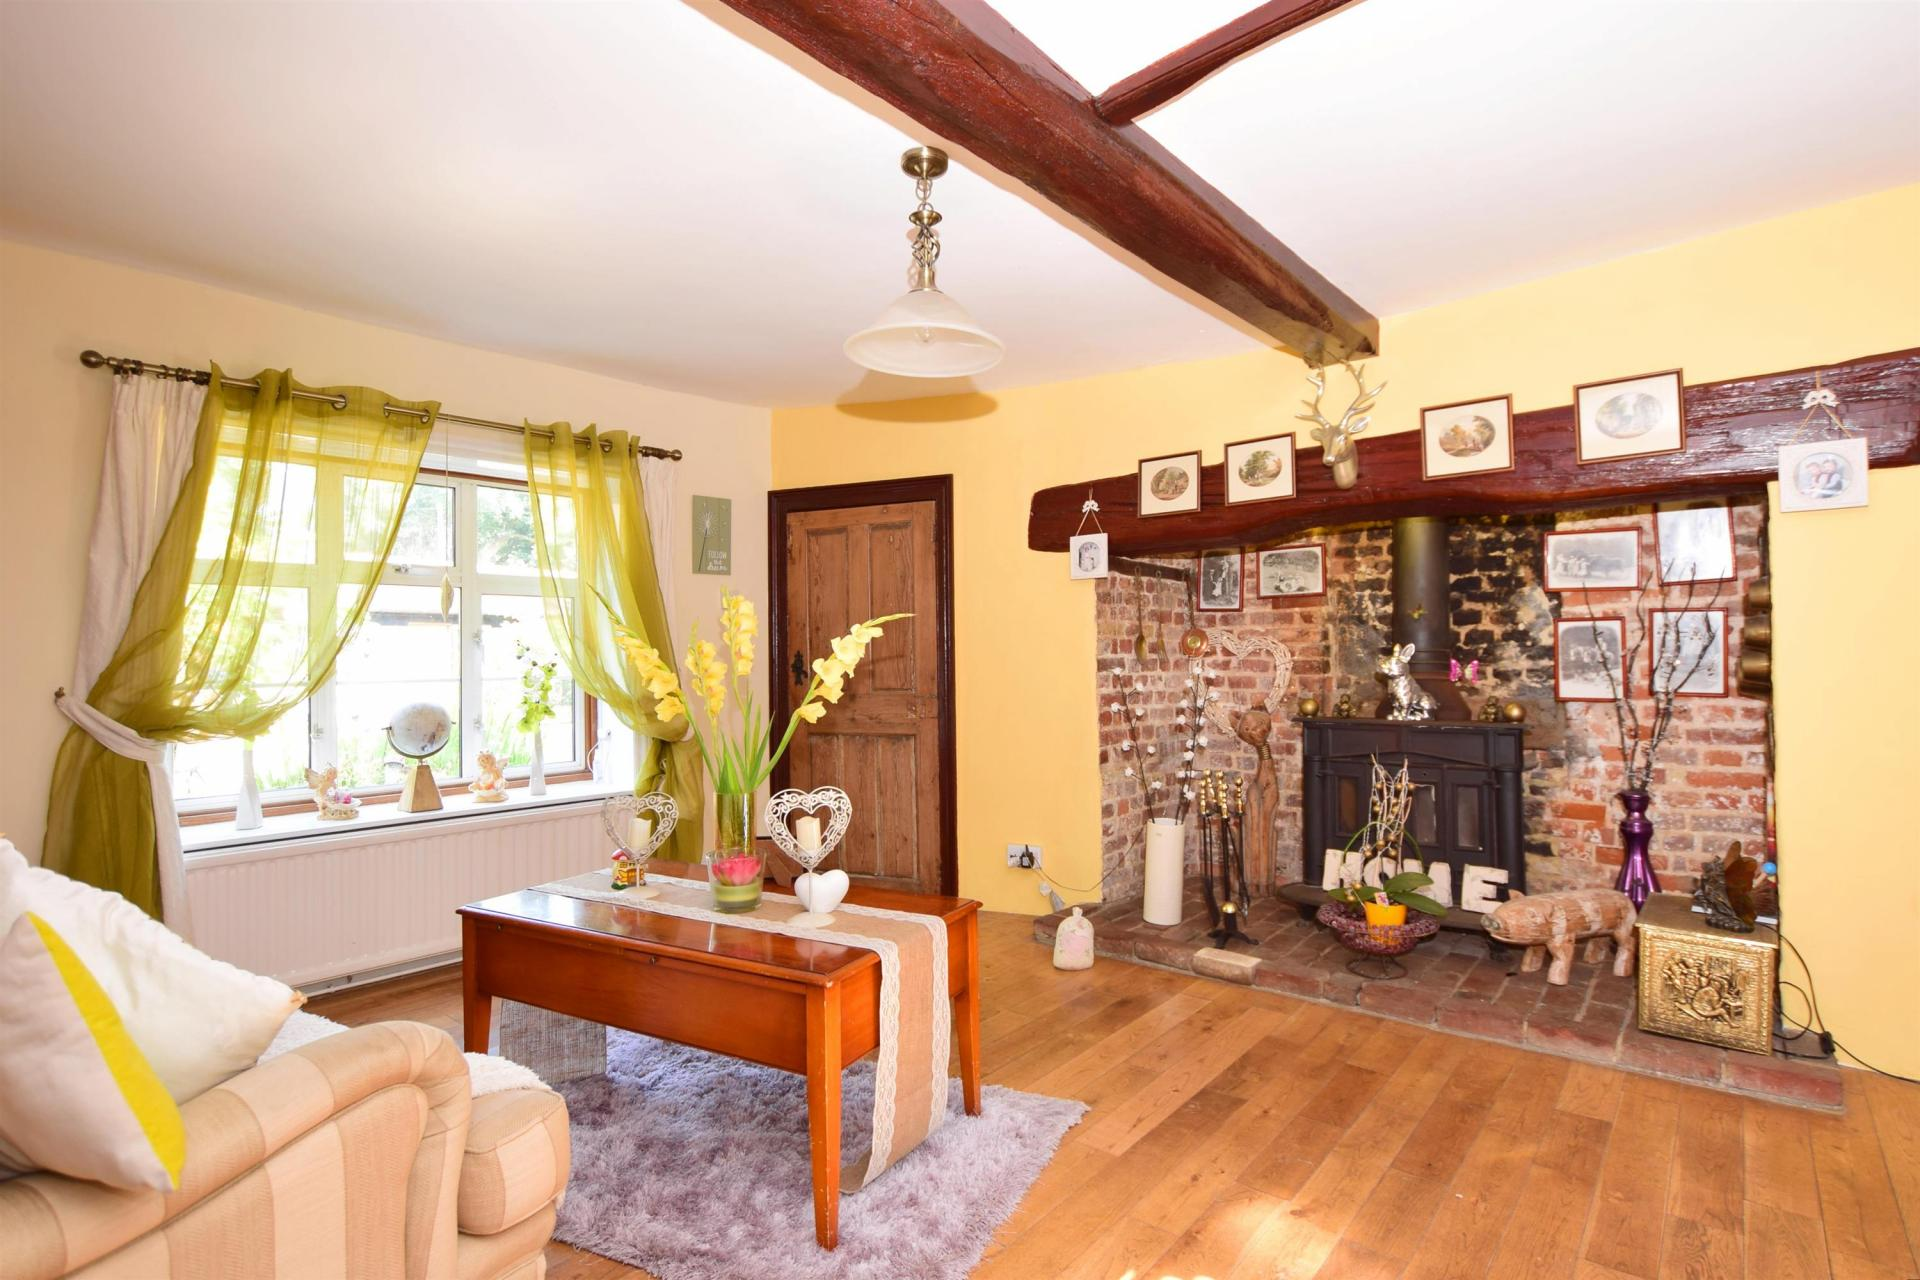 4 Bedroom House For Sale In Dover